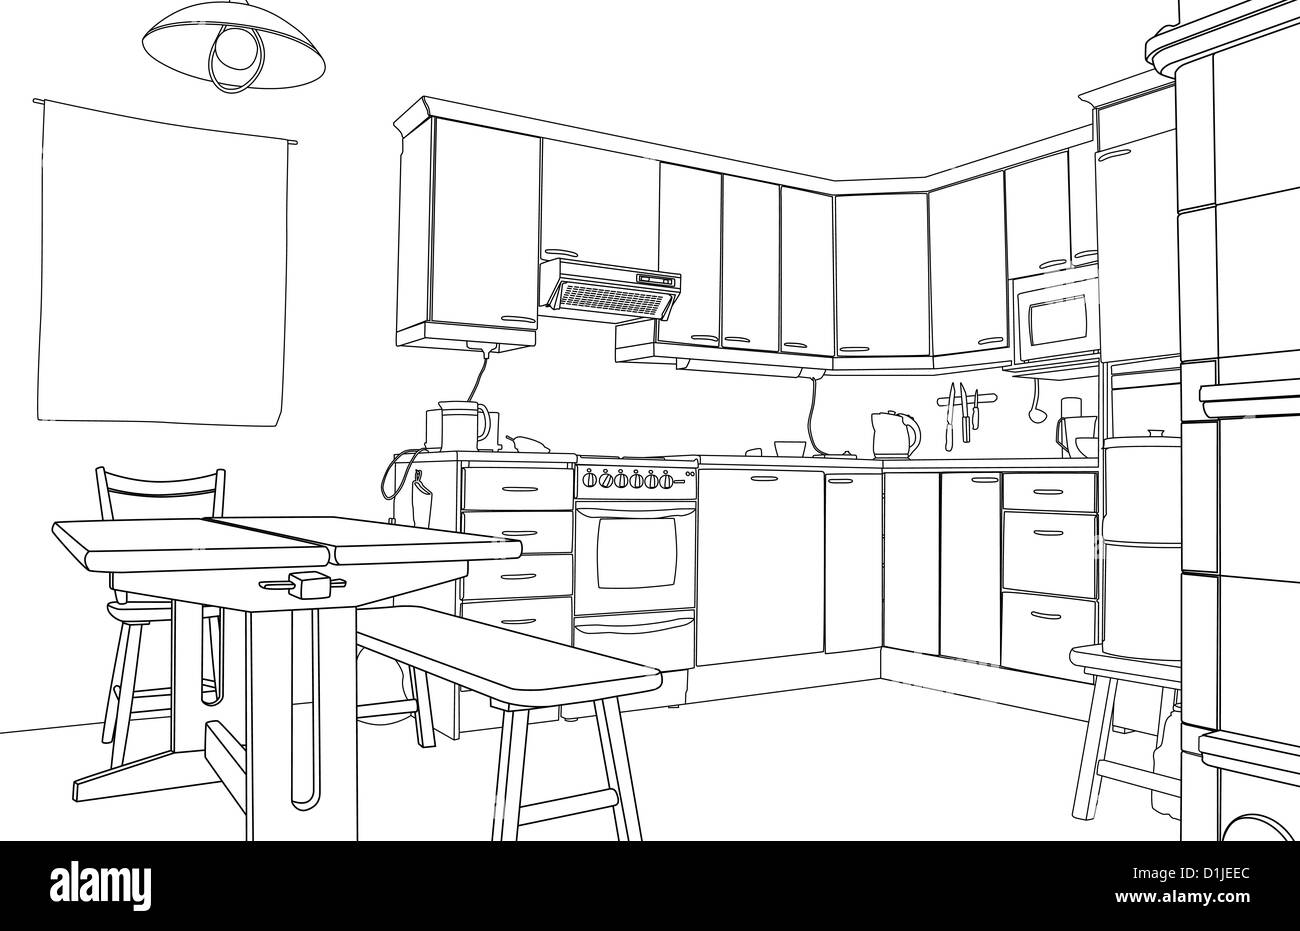 Illustration Of An Outline Sketch Of A Kitchen Interior Stock Photo